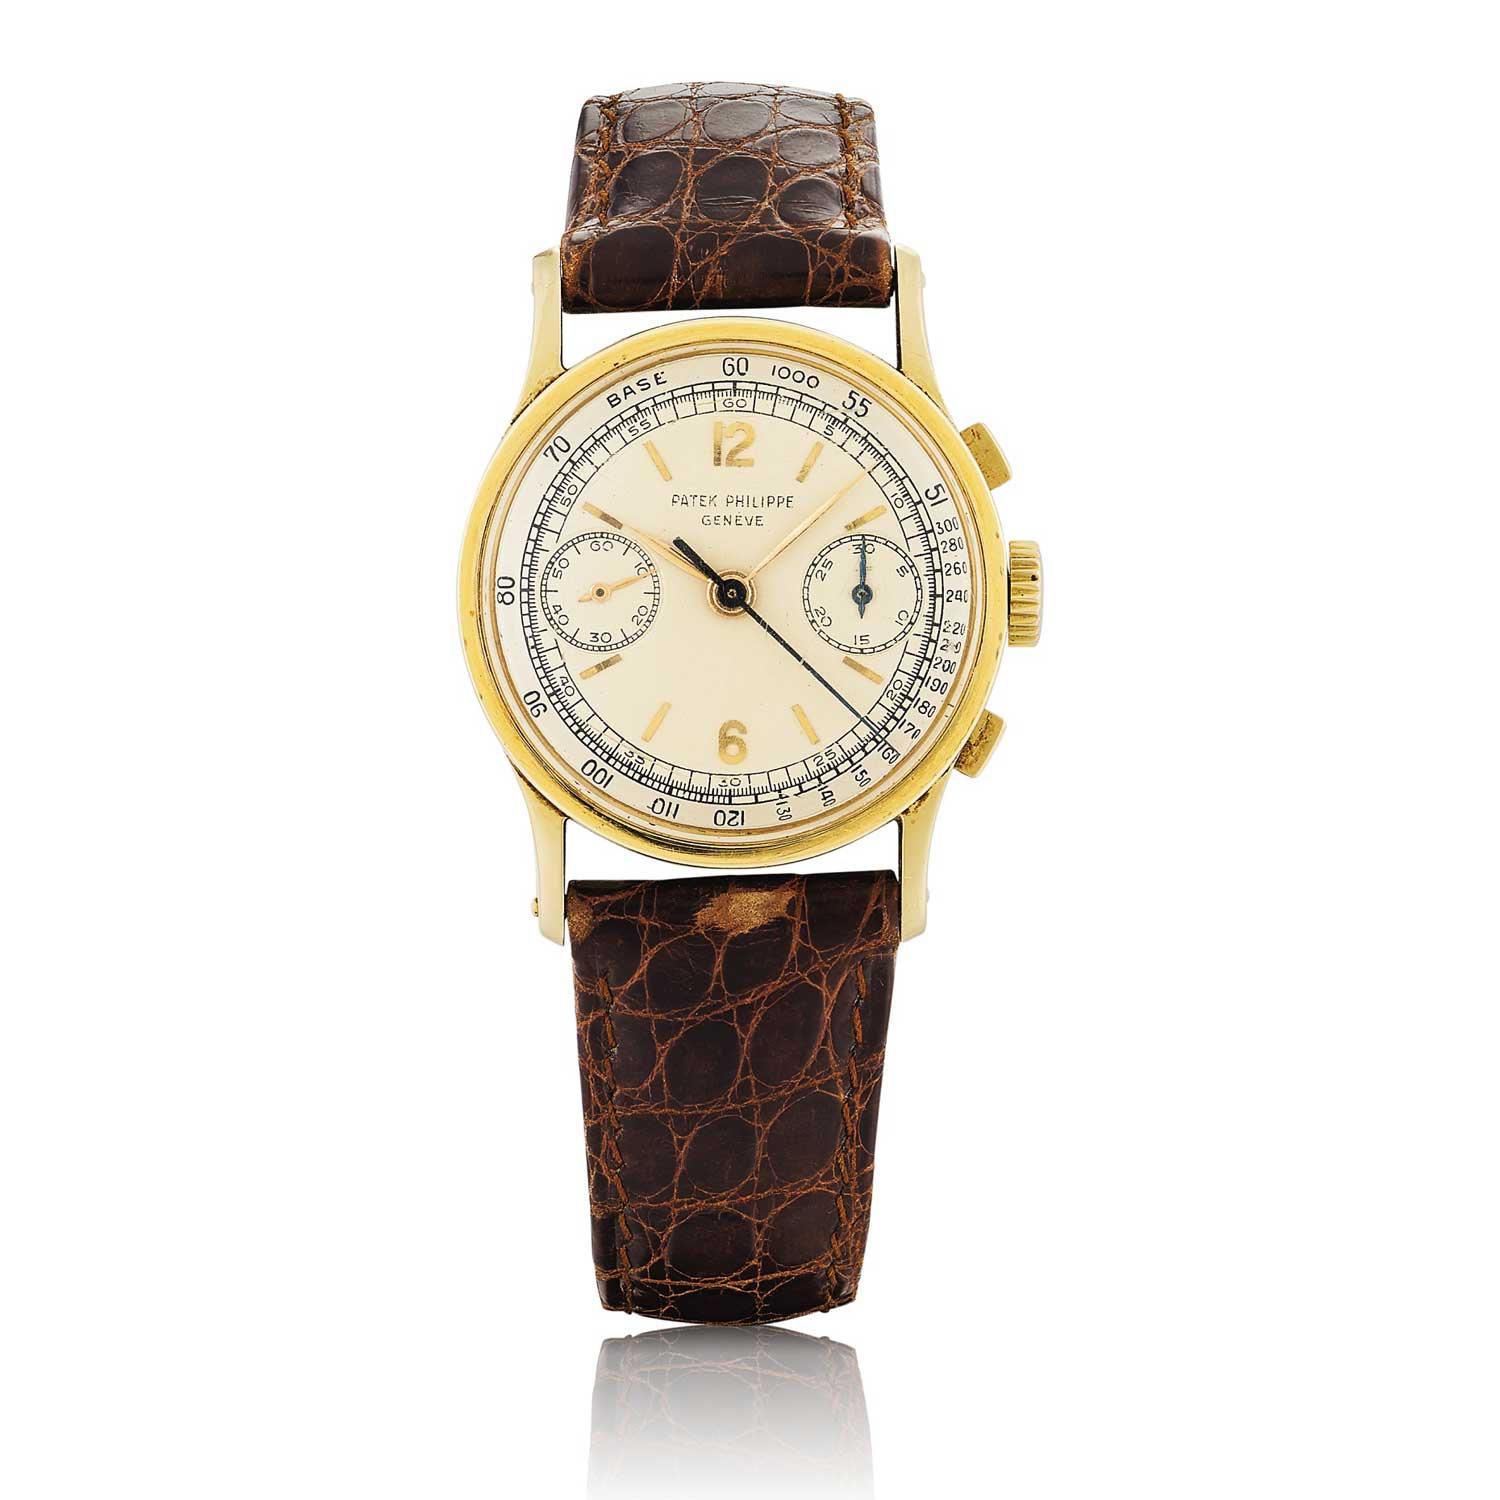 1952 Patek Philippe ref. 533 yellow gold chronograph with Arabic numerals (Image: Sothebys.com)